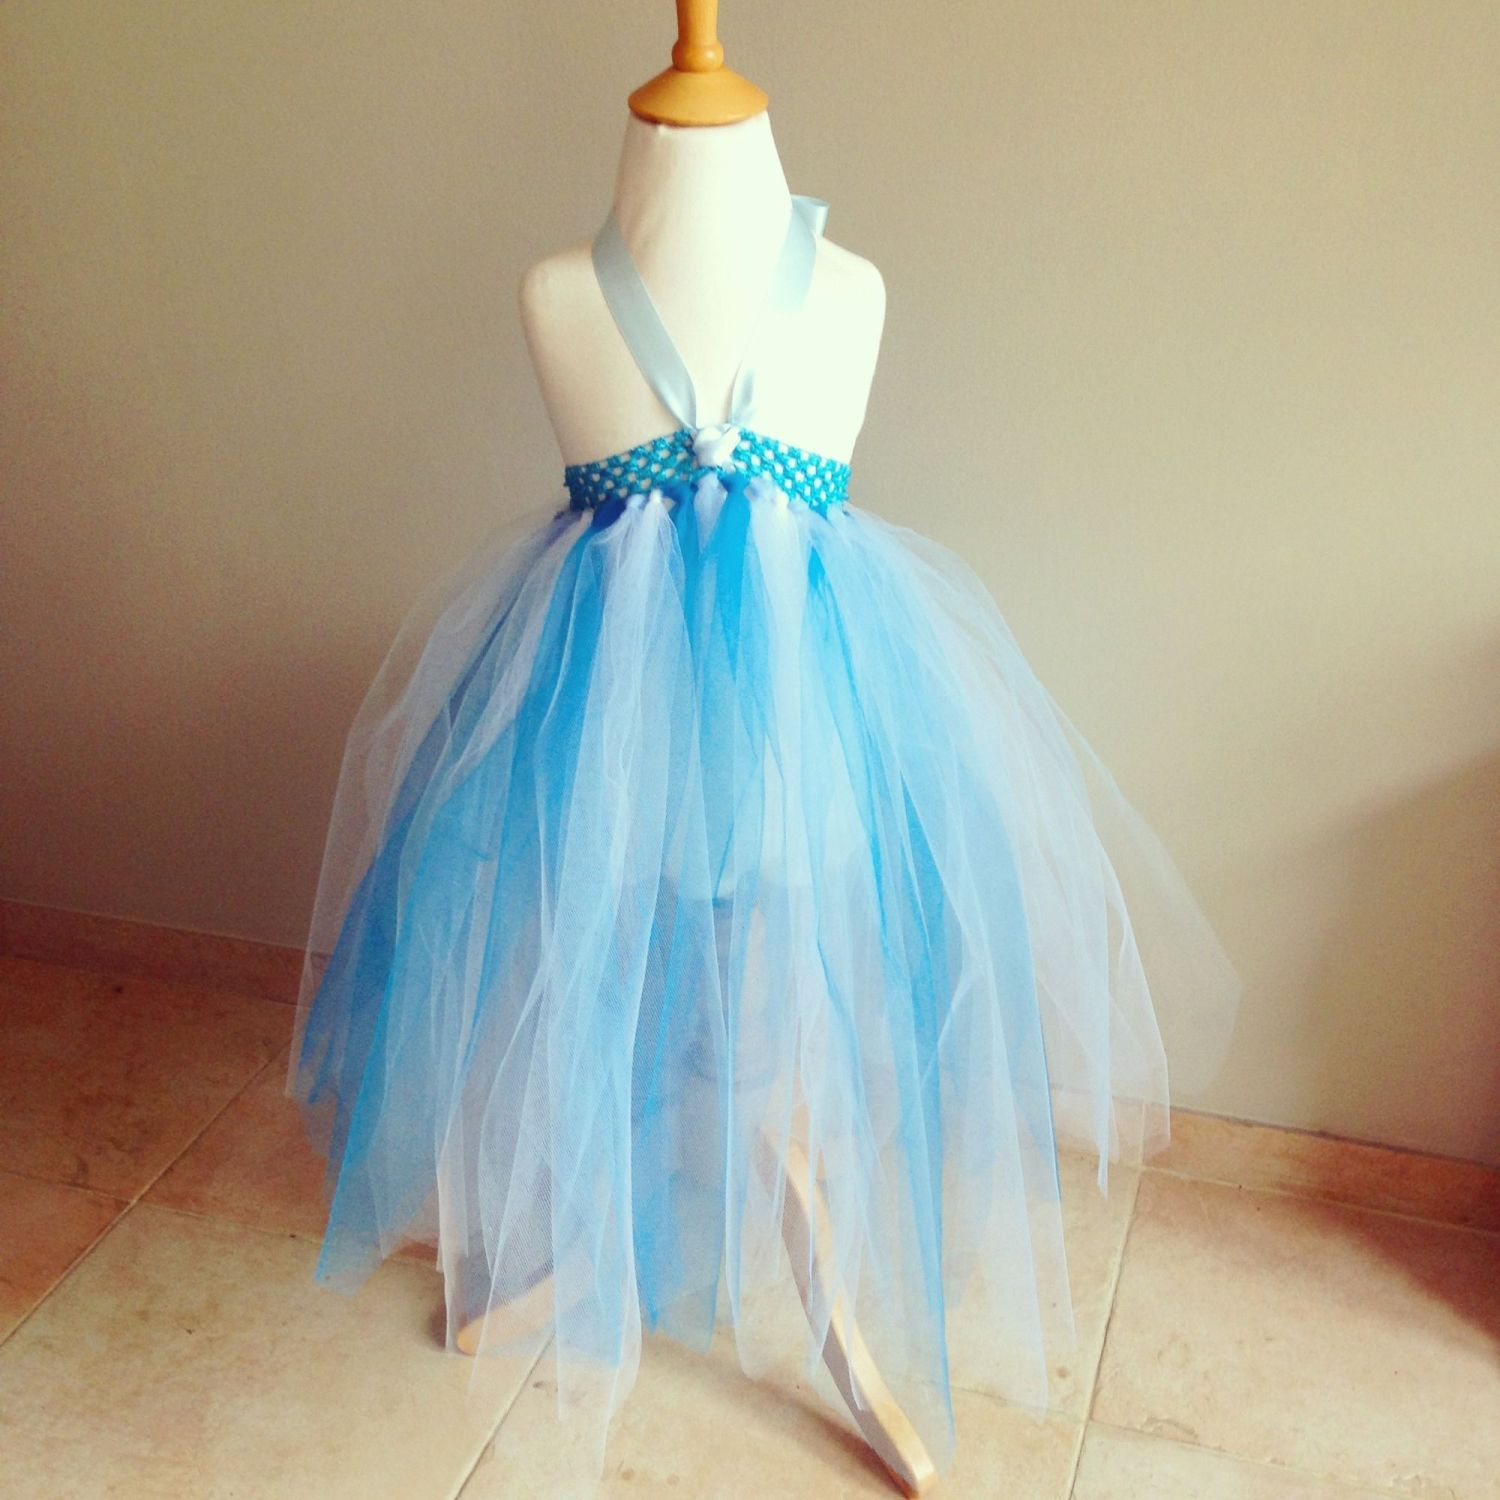 Frozen Inspired Blue and White Tutu